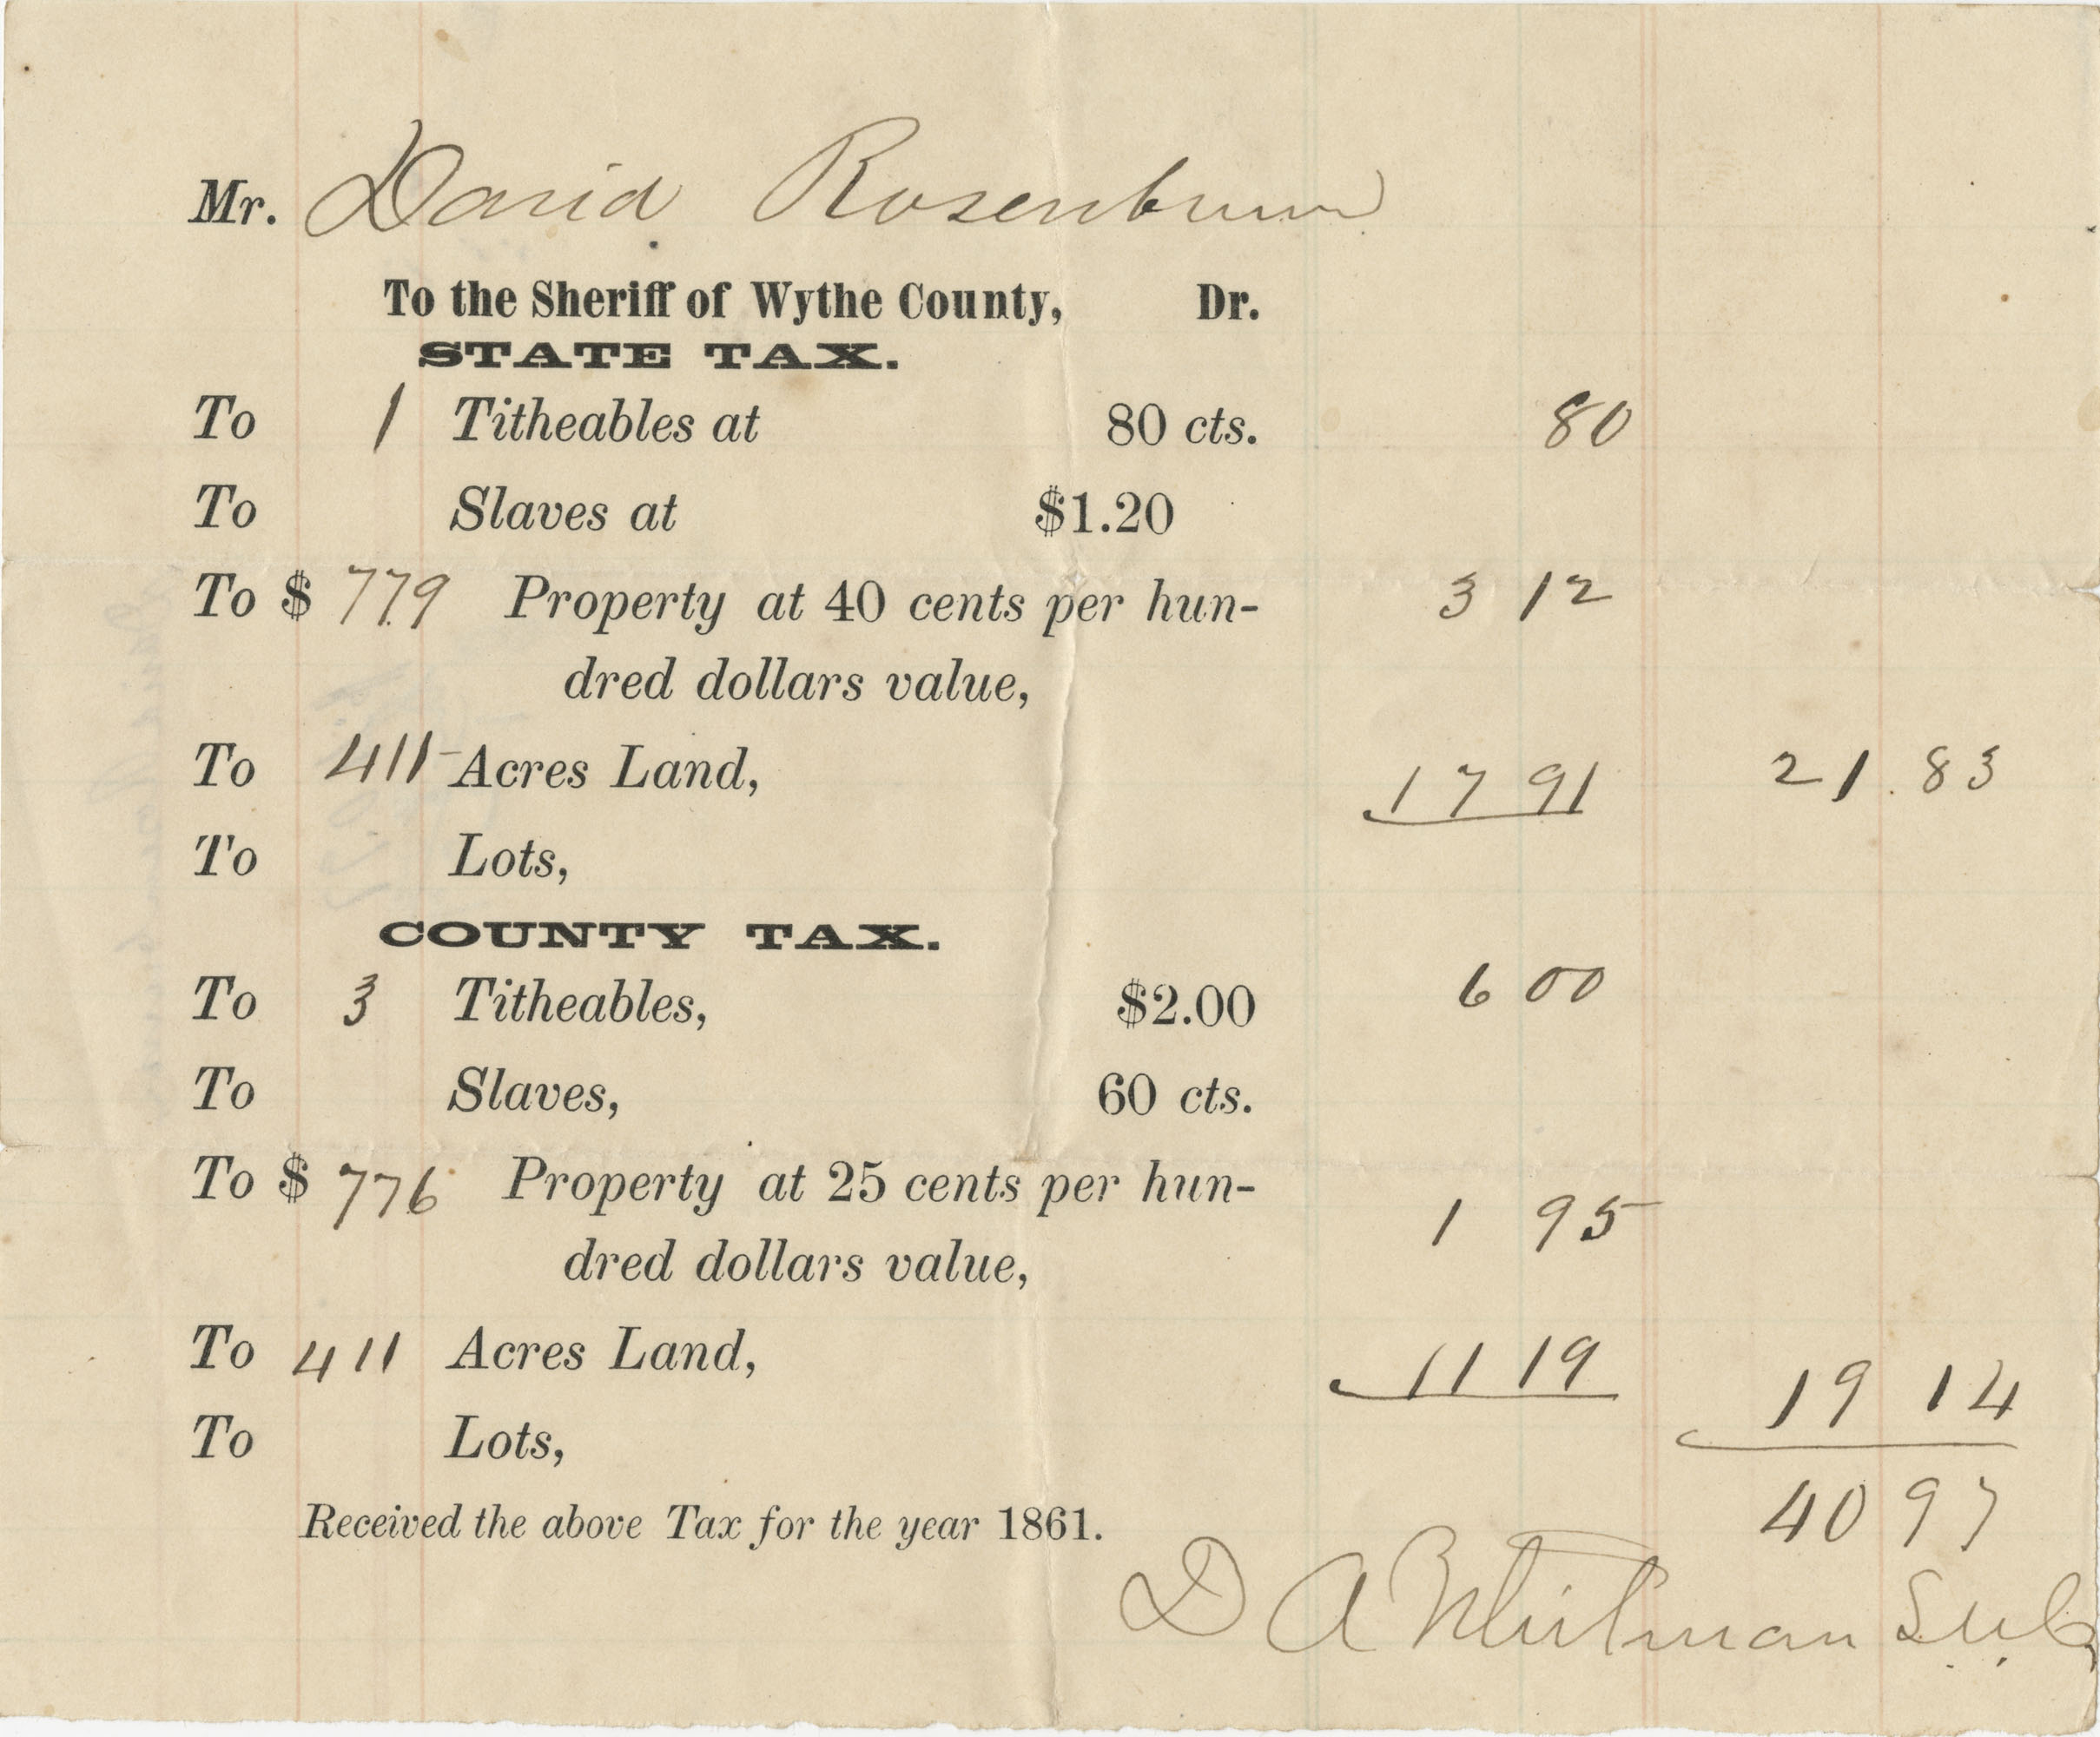 Wythe County, Virginia, County and State Tax Form